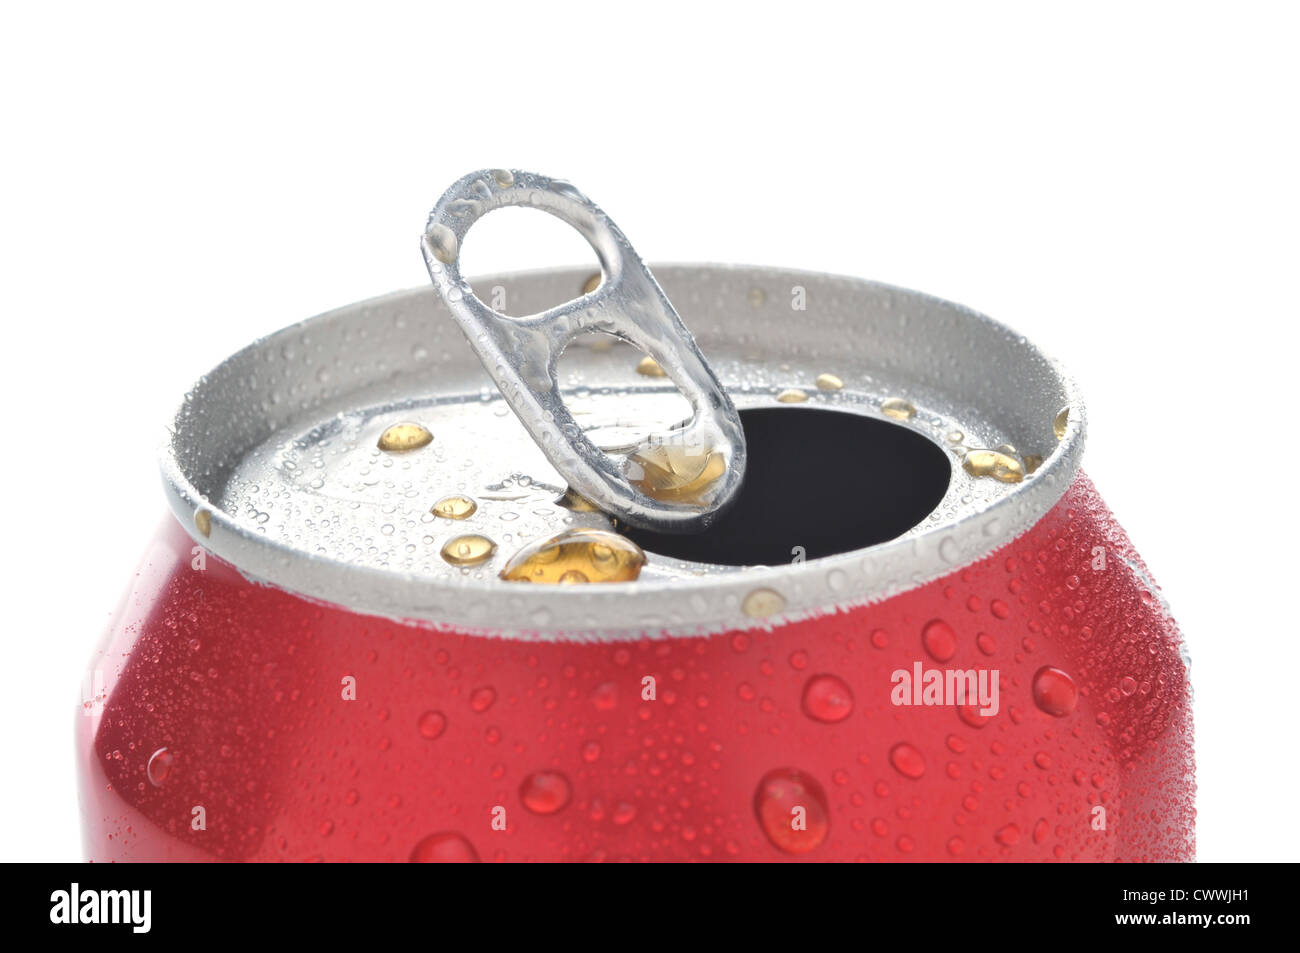 Close Up of a Red Soda Can with Pull Tab open with condensation - Stock Image